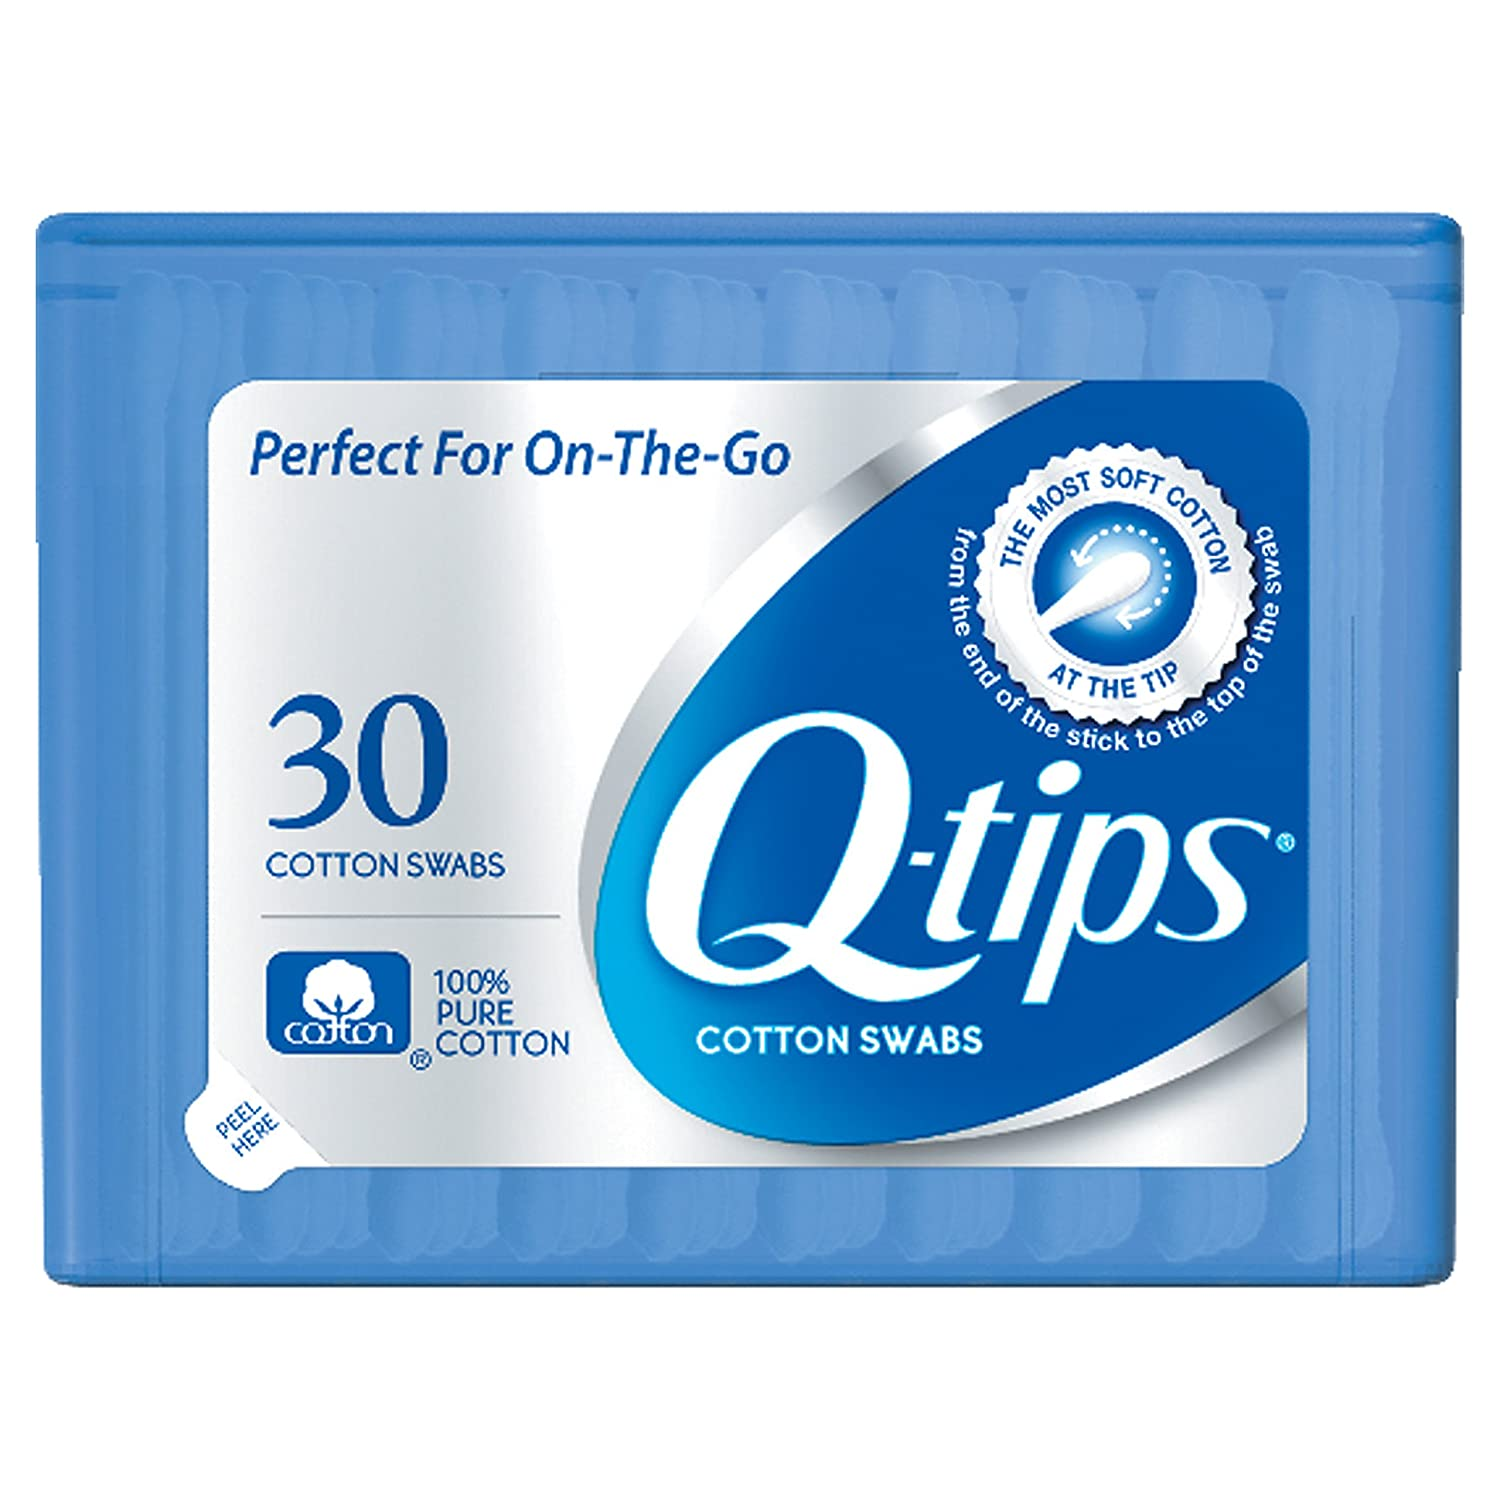 Q-tips Cotton Swabs, 500 Count (Pack of 4) Unilever